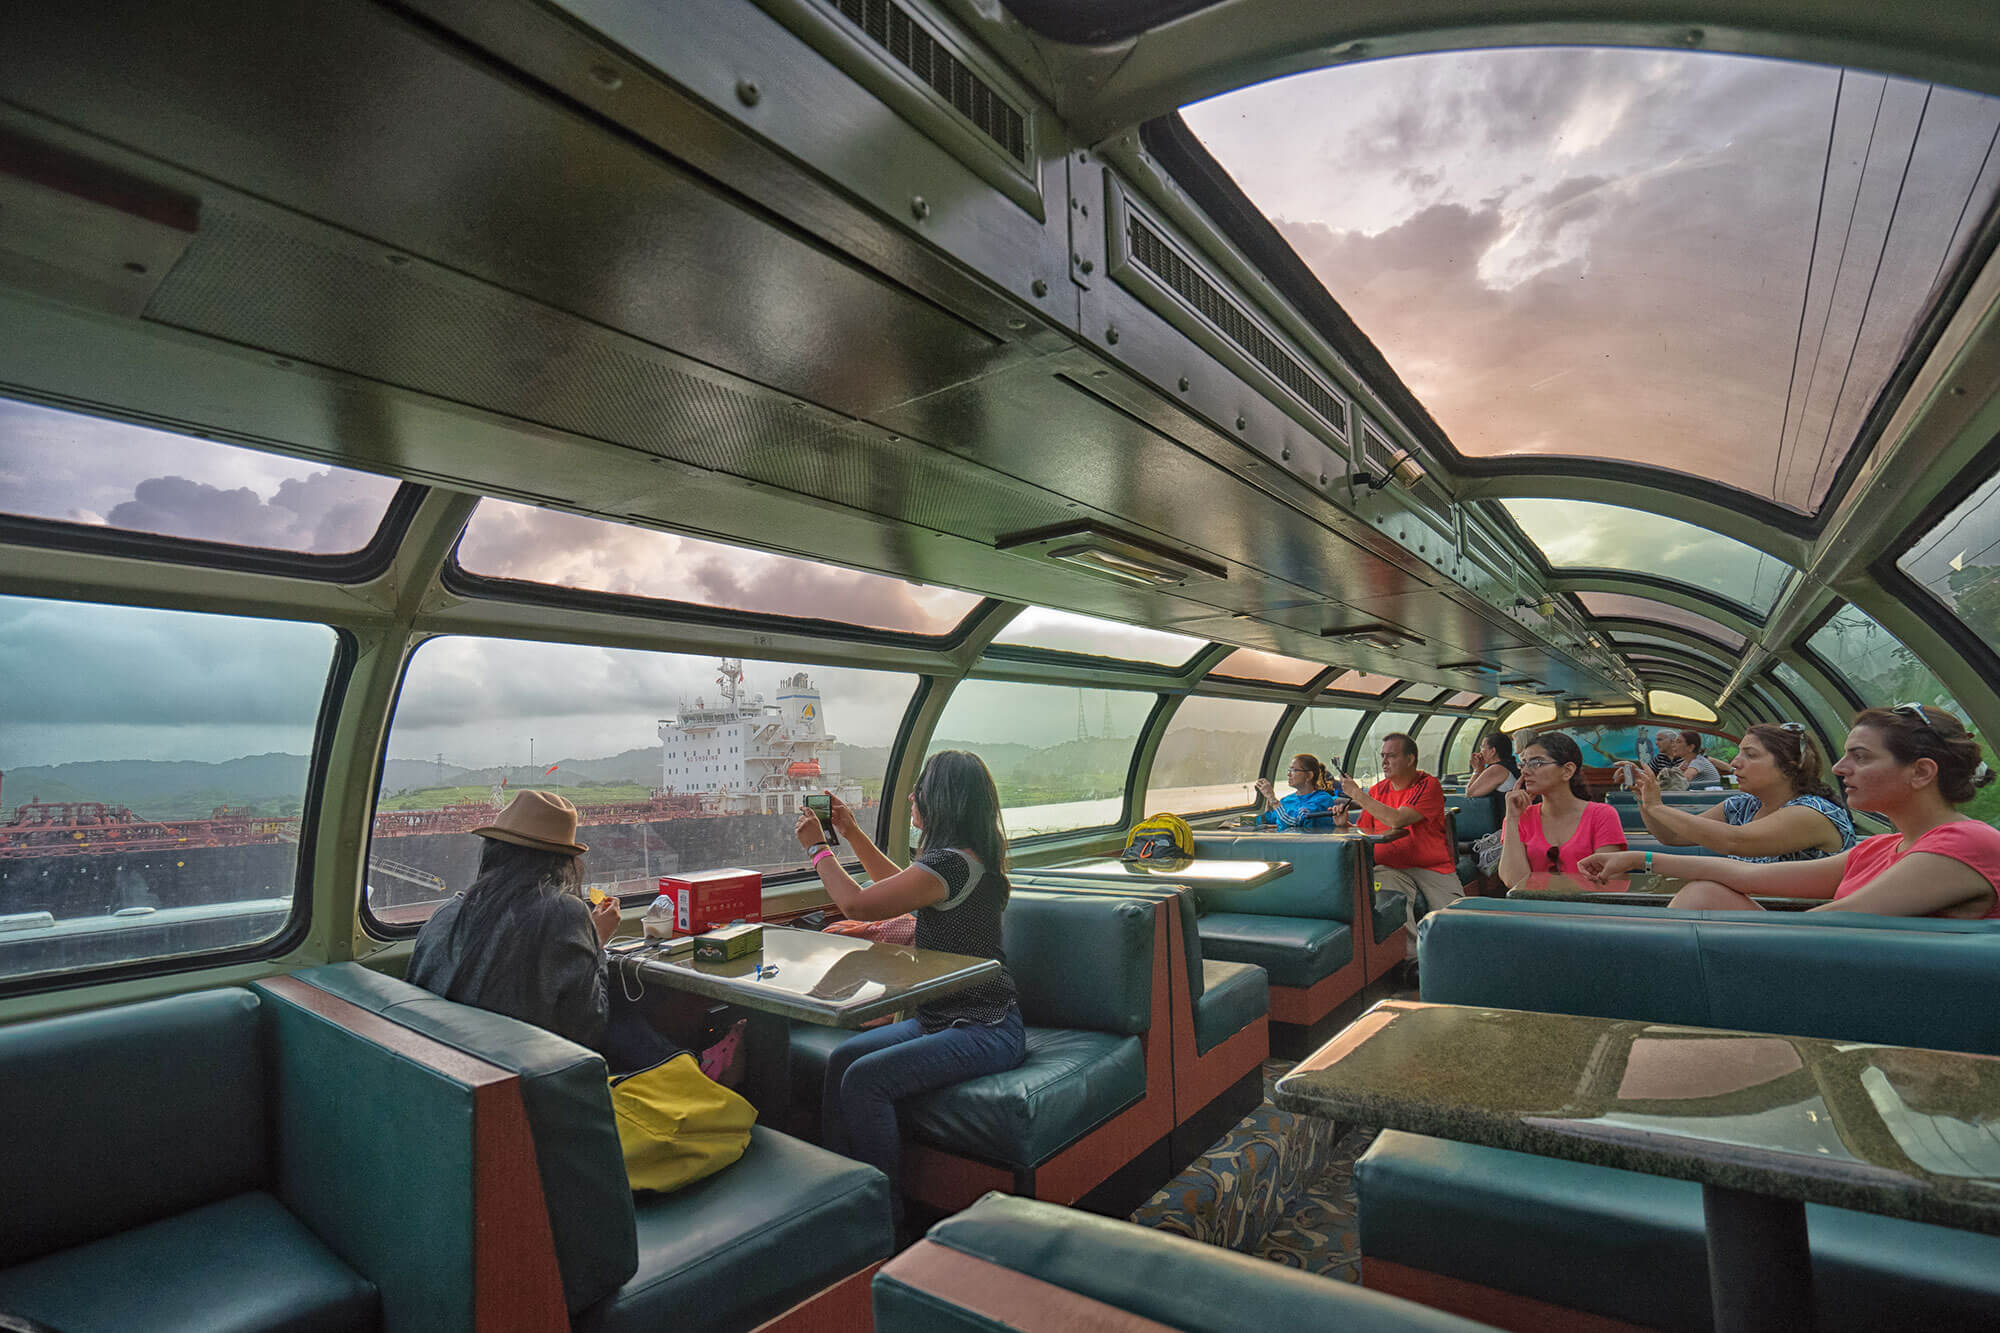 Inside the Dome Car of the Panama Canal Railway